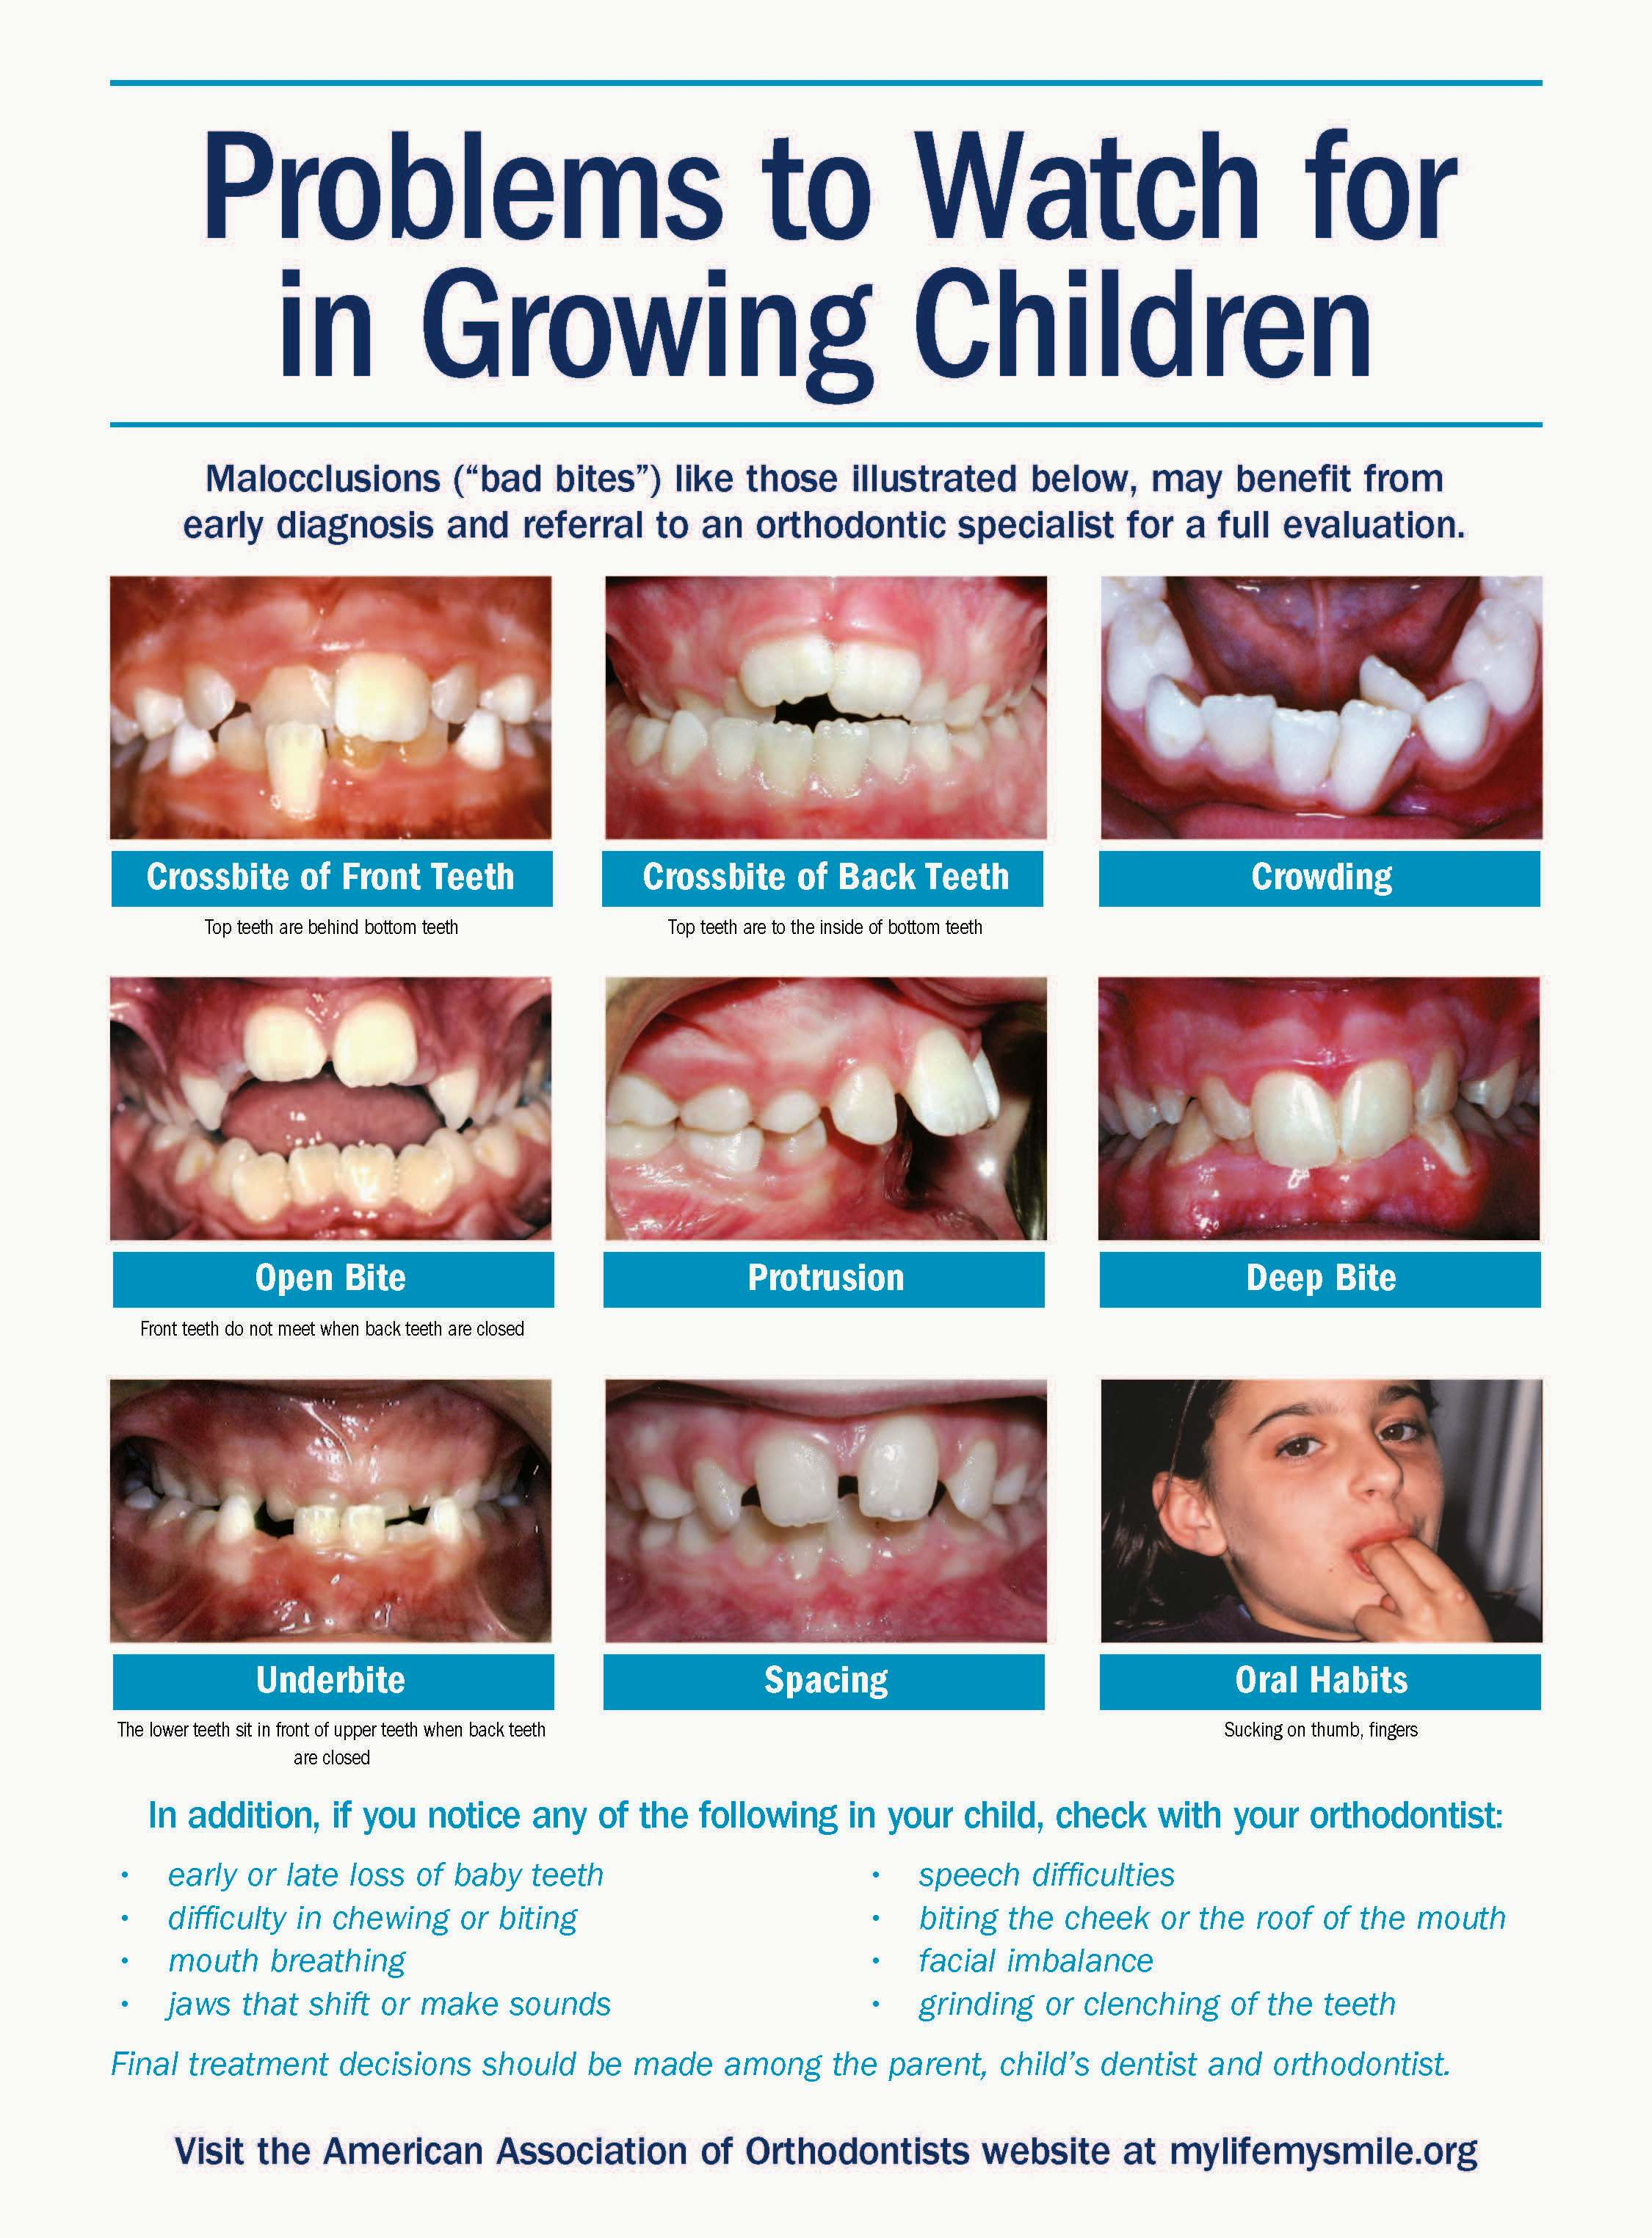 At what age and how does the childs teeth grow